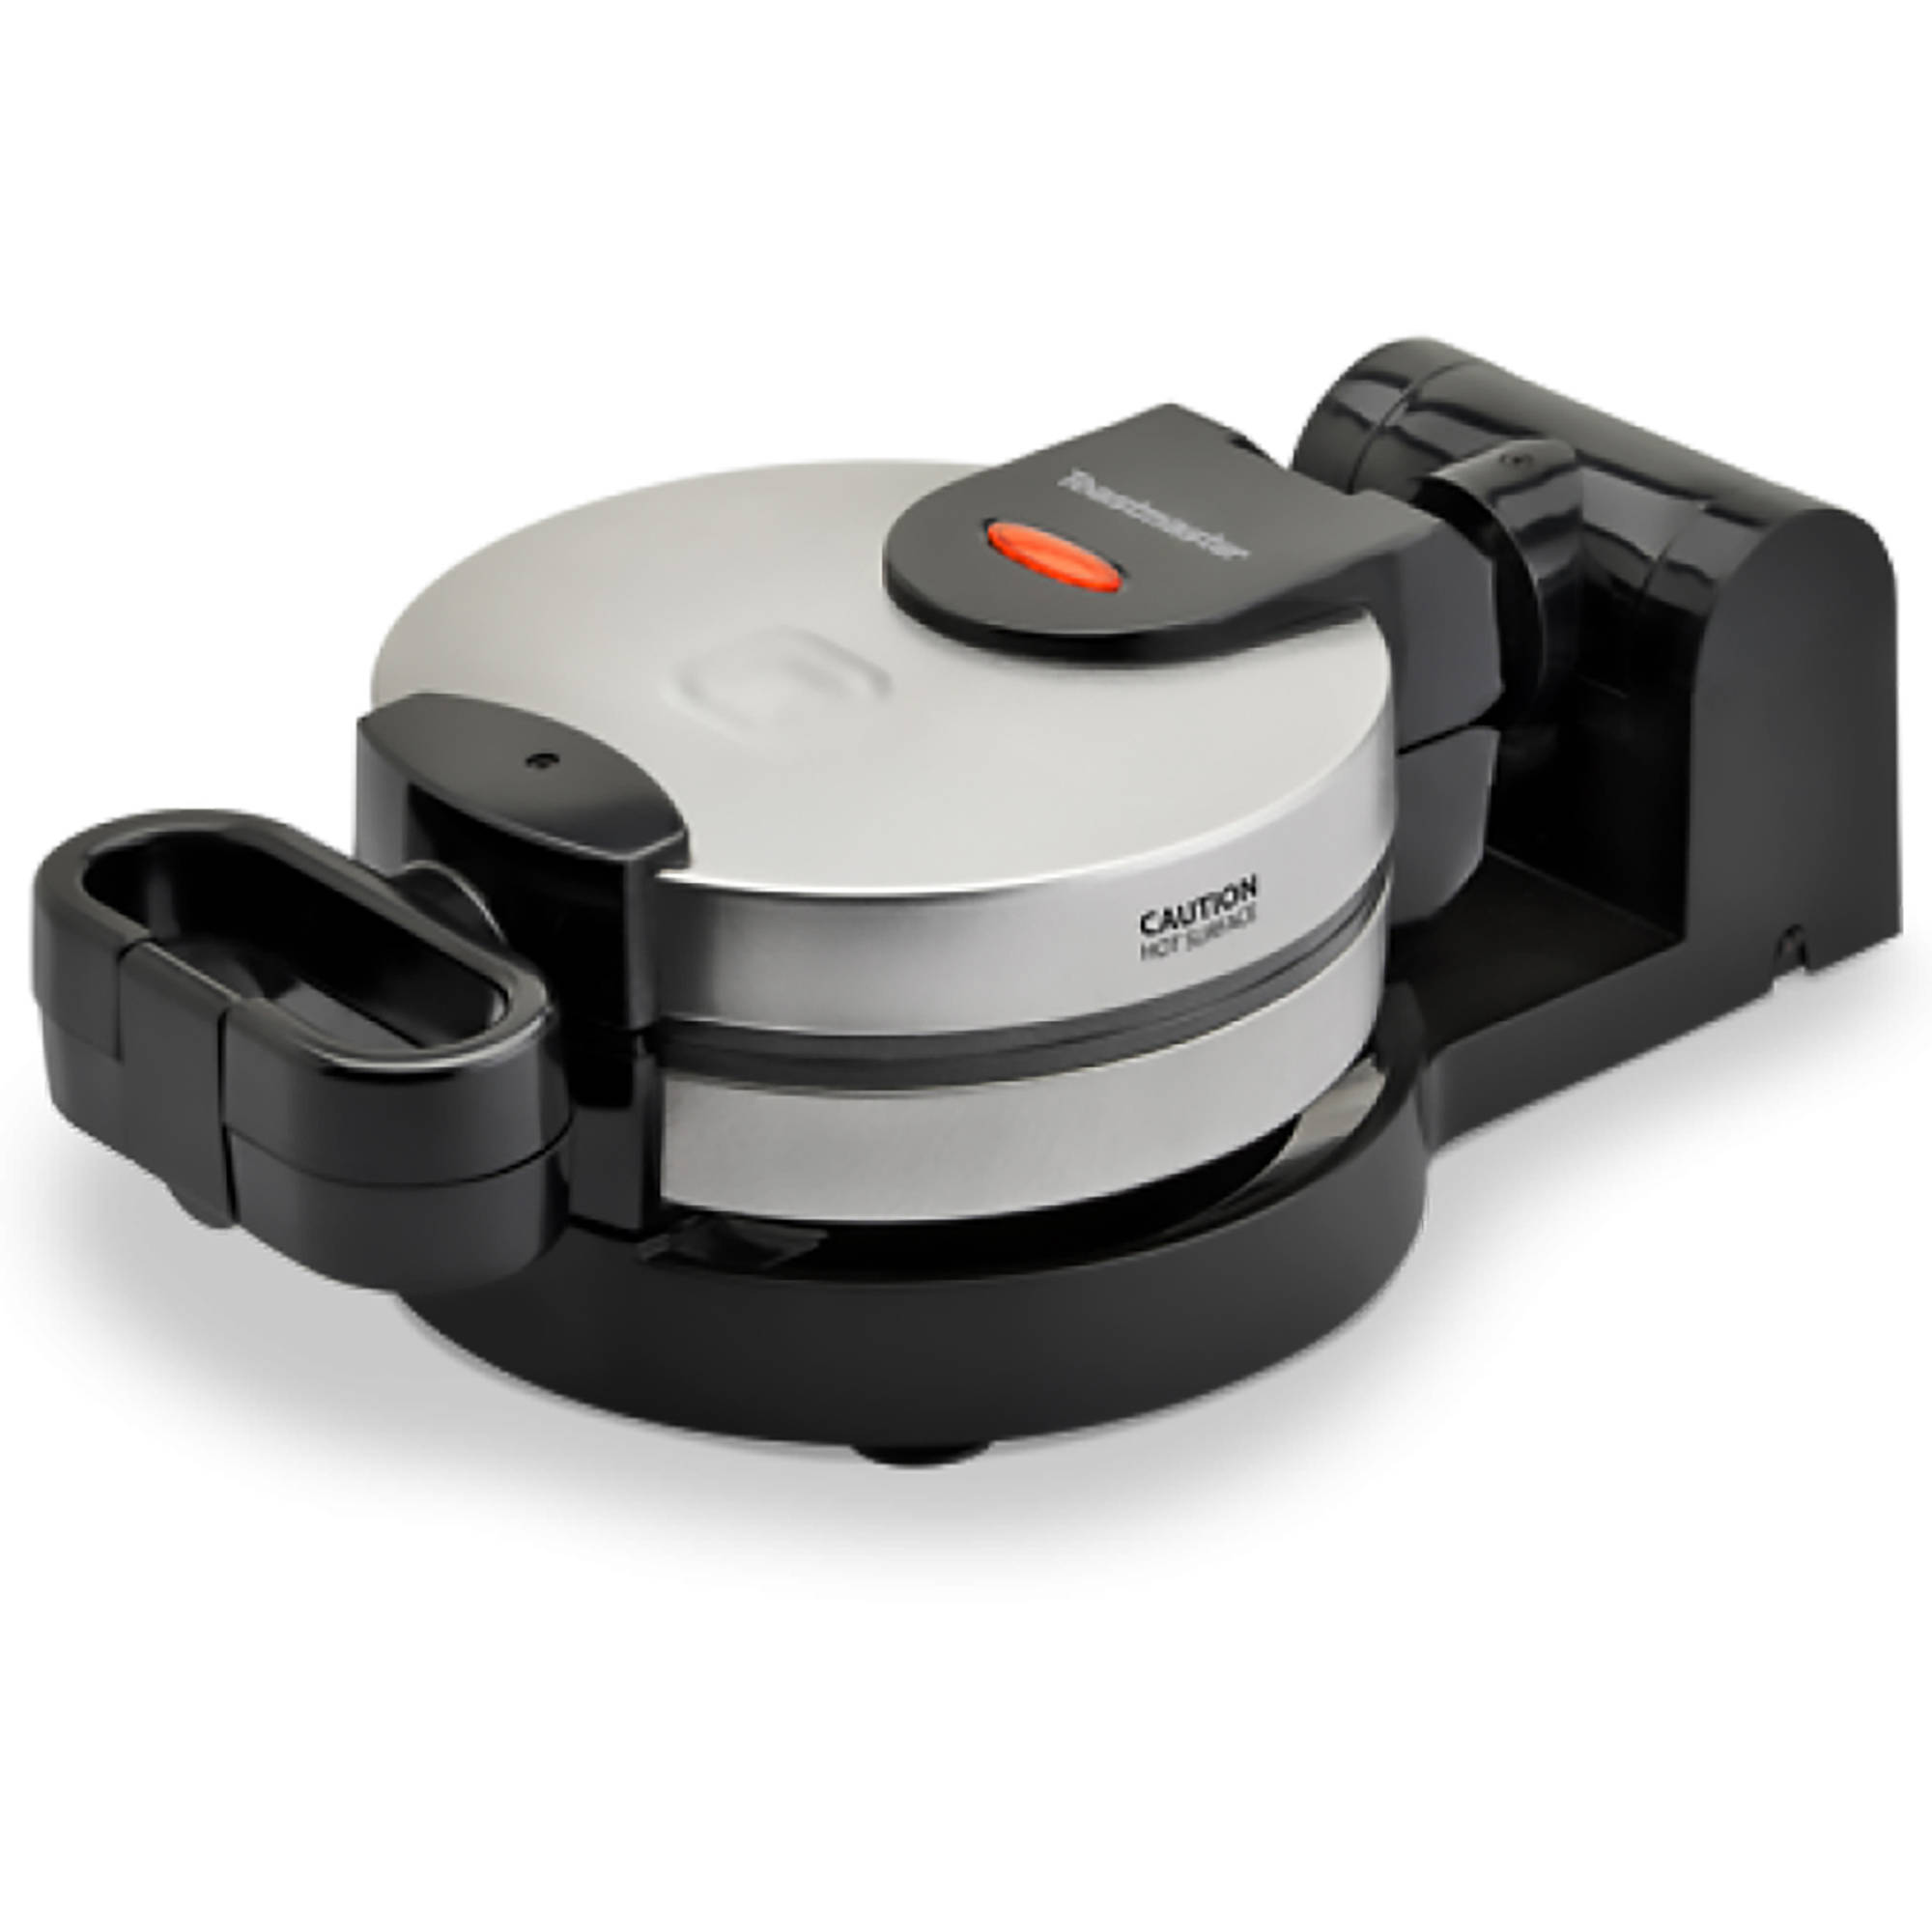 Toastmaster TM-285WM Low Profile Flip Waffle Maker